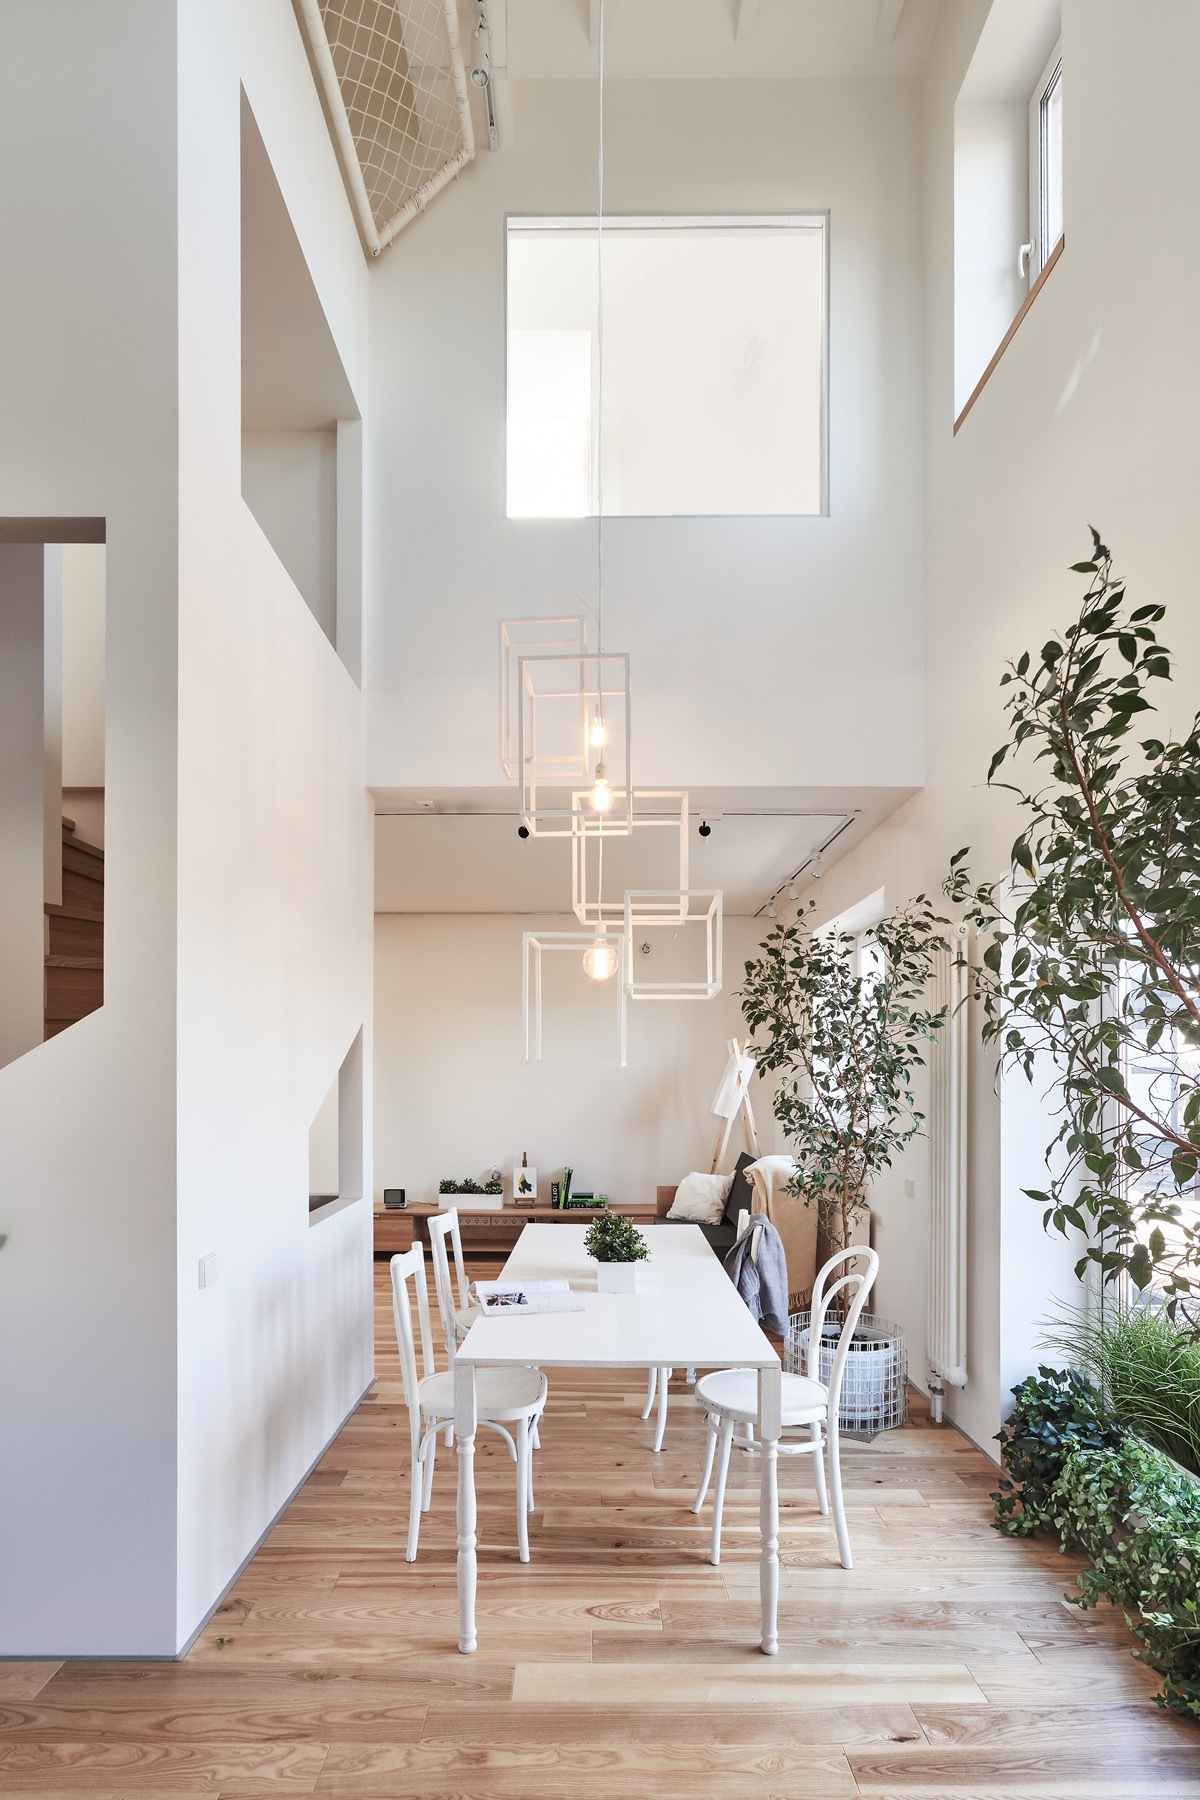 home designing a white and wood house for a stylish family decorative elements in the house are simple yet notable like the geometric dining room pendant light that hangs over the table